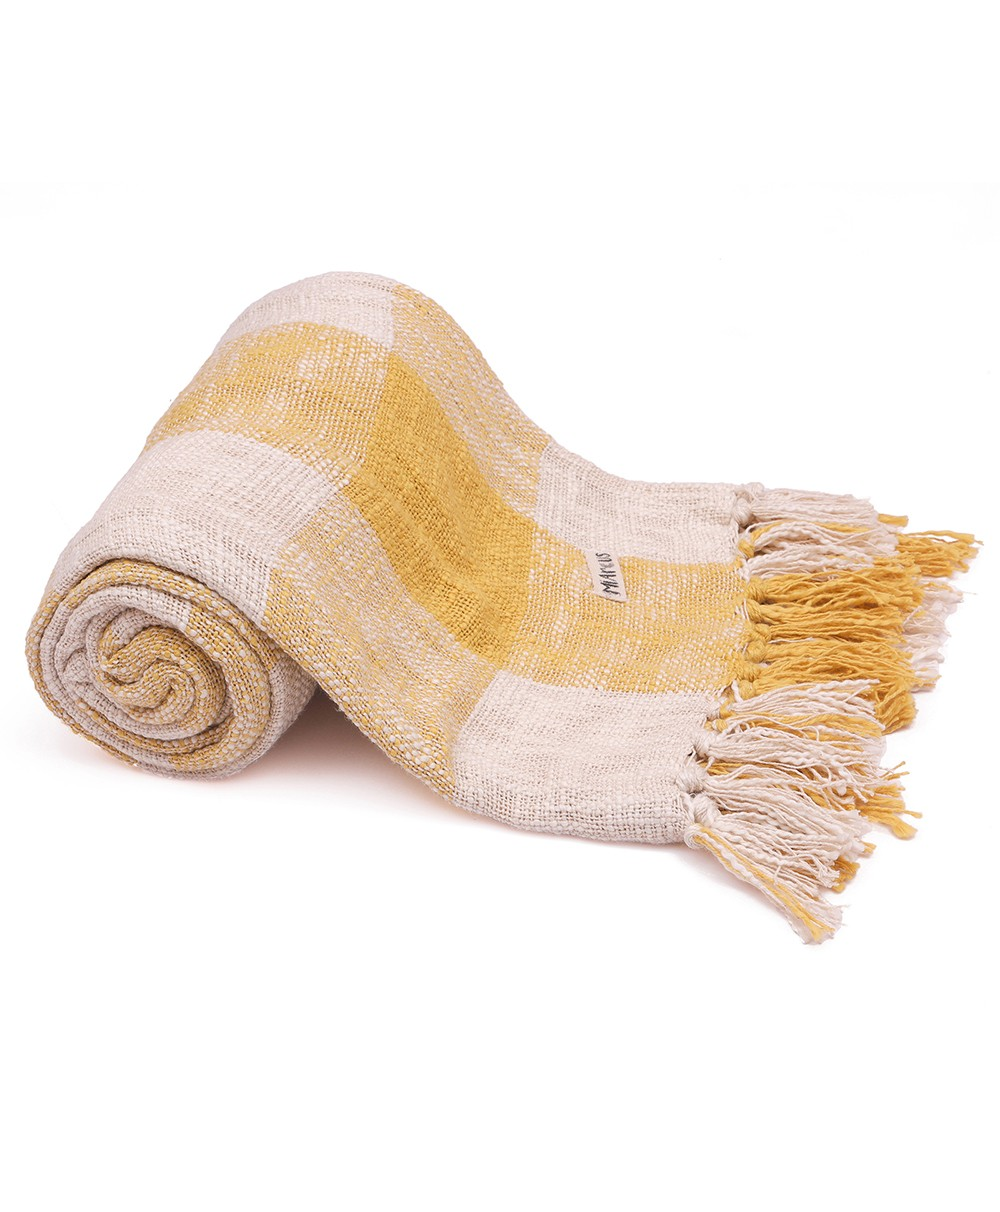 Cuddle Softy Knitted Throw